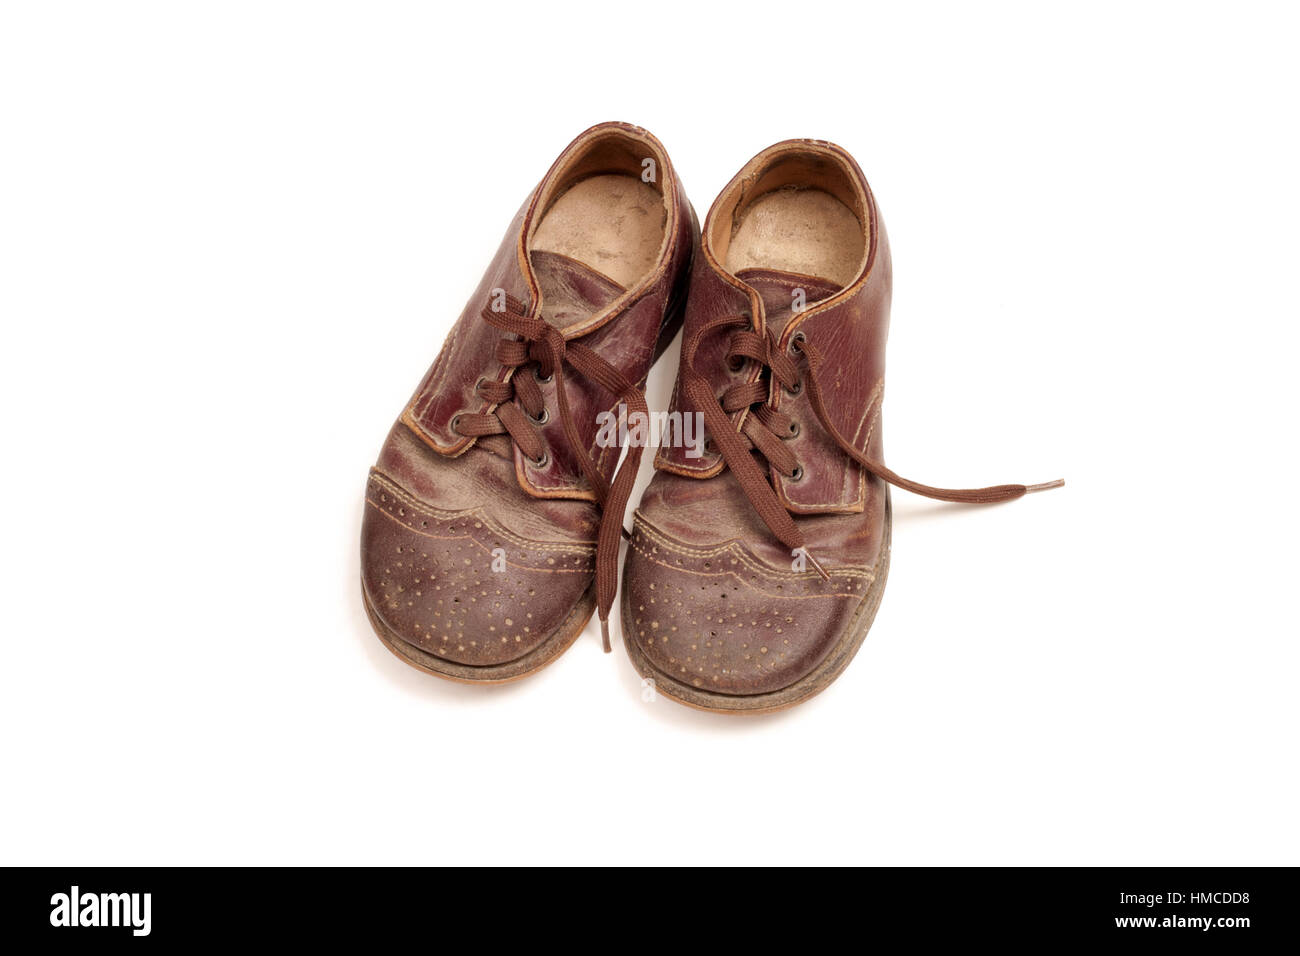 6520edd82623e Oxford Shoes Stock Photos & Oxford Shoes Stock Images - Alamy